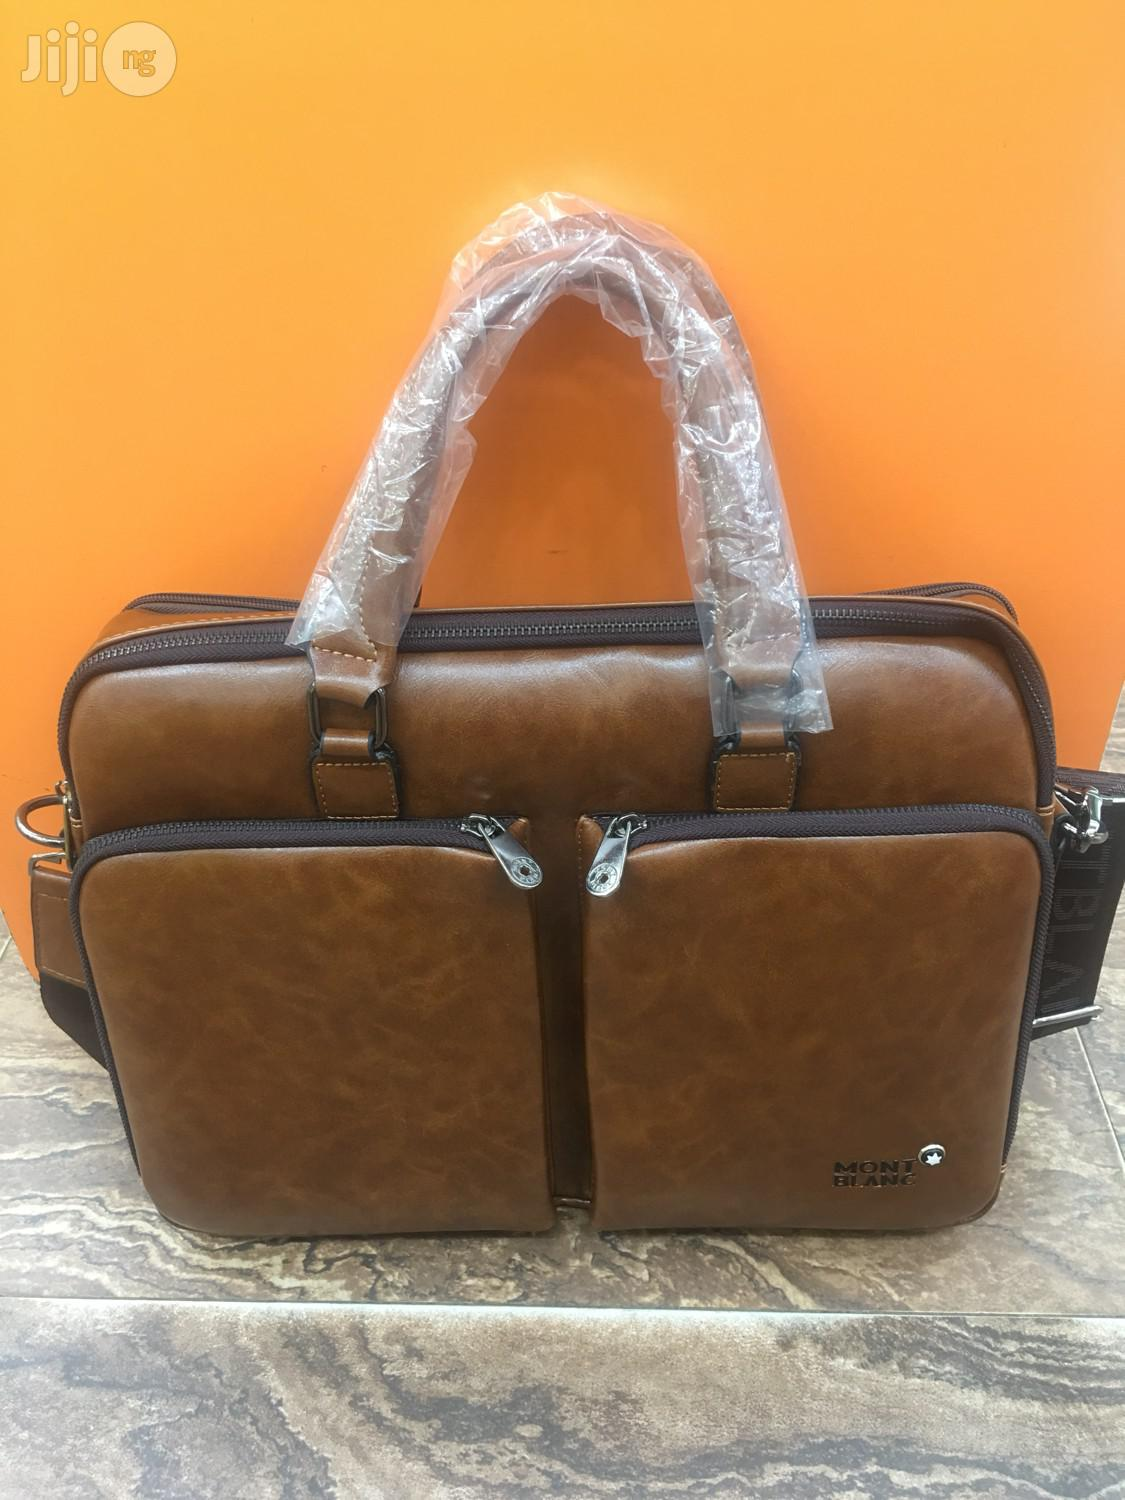 Montblanc Bag | Bags for sale in Surulere, Lagos State, Nigeria